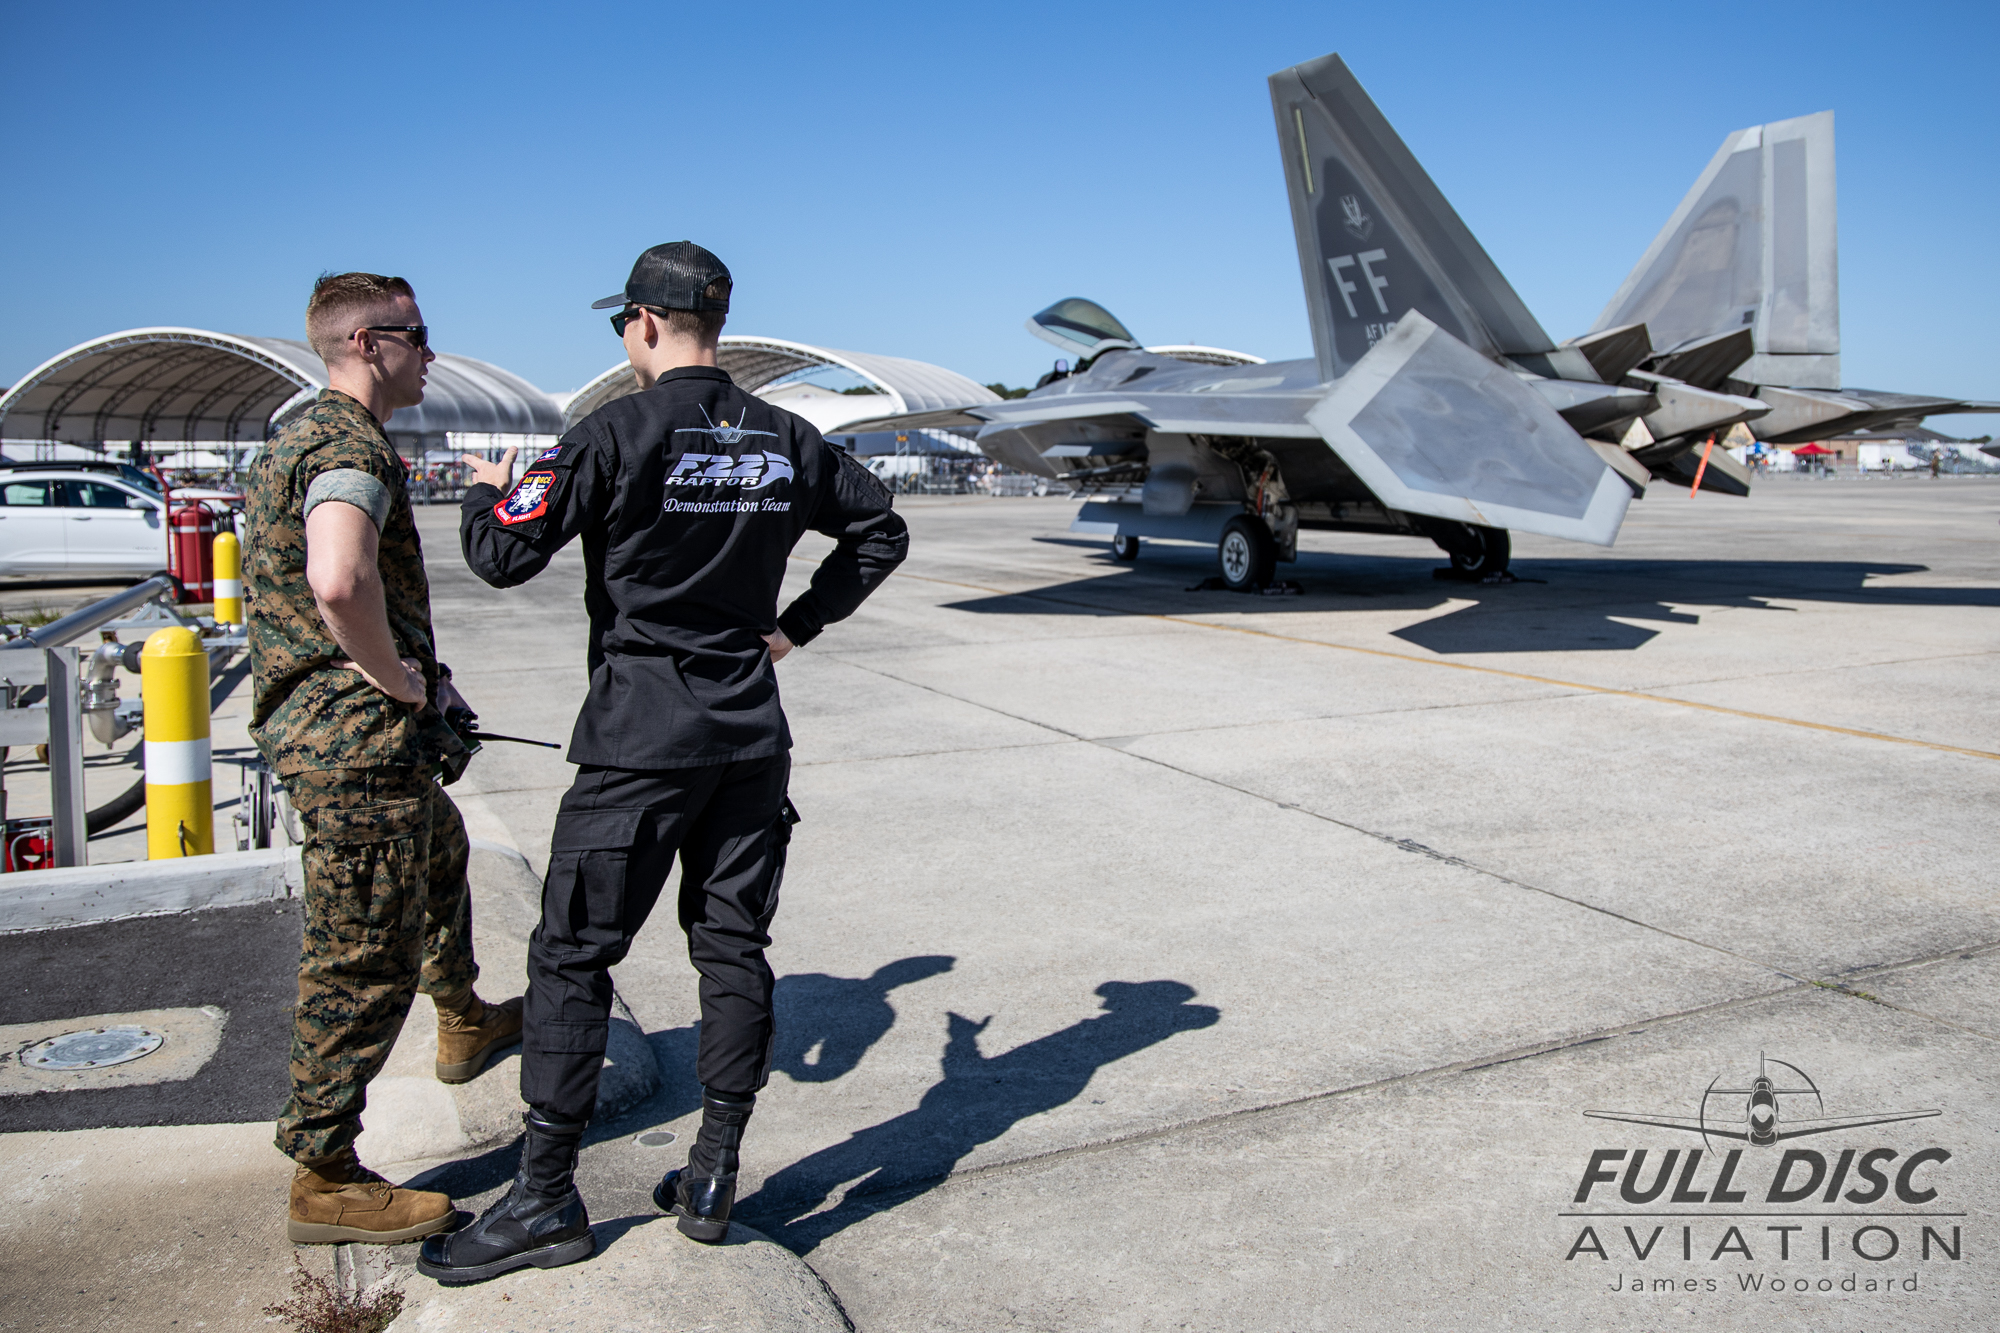 F22DemoTeam_FullDiscAviation_JamesWoodard-April 27, 2019-26.jpg